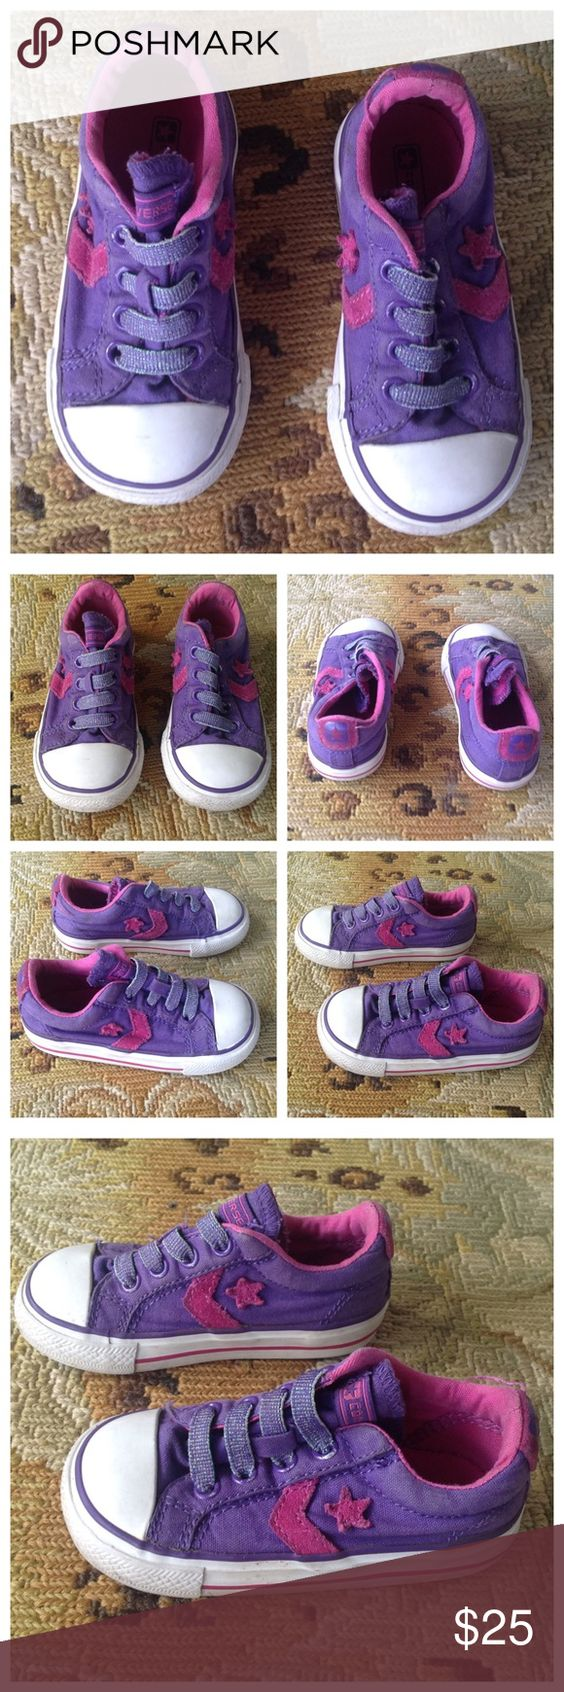 Converse Purple Pink Toddler Shoes Sneakers 6 Converse. Purple and pink baby girl toddler shoes. Size 6. Slip on sneakers. Look great- I did not wash them, so they should wash up even better! Converse Shoes Sneakers